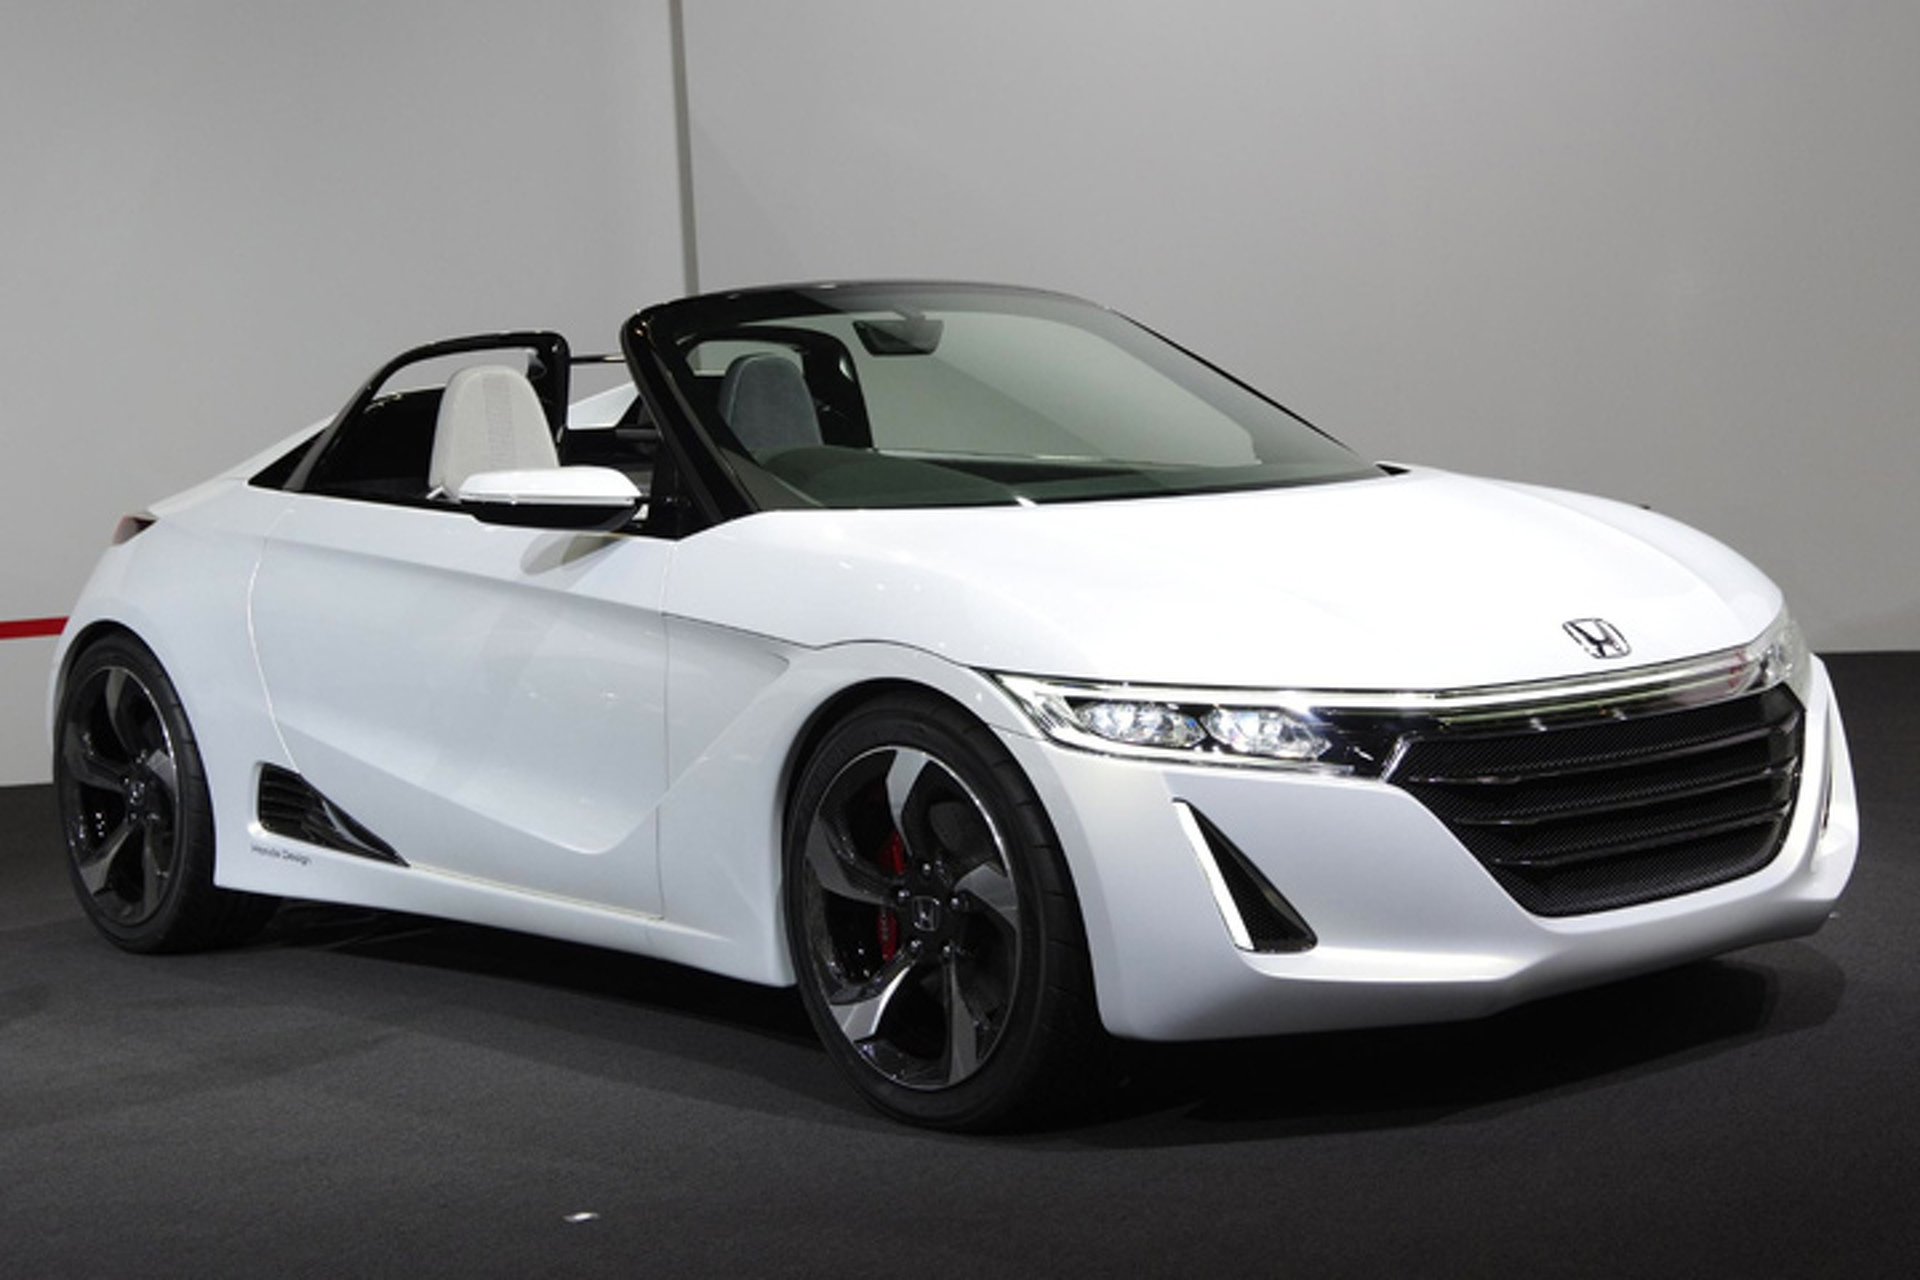 Honda is Bringing Back the S2000